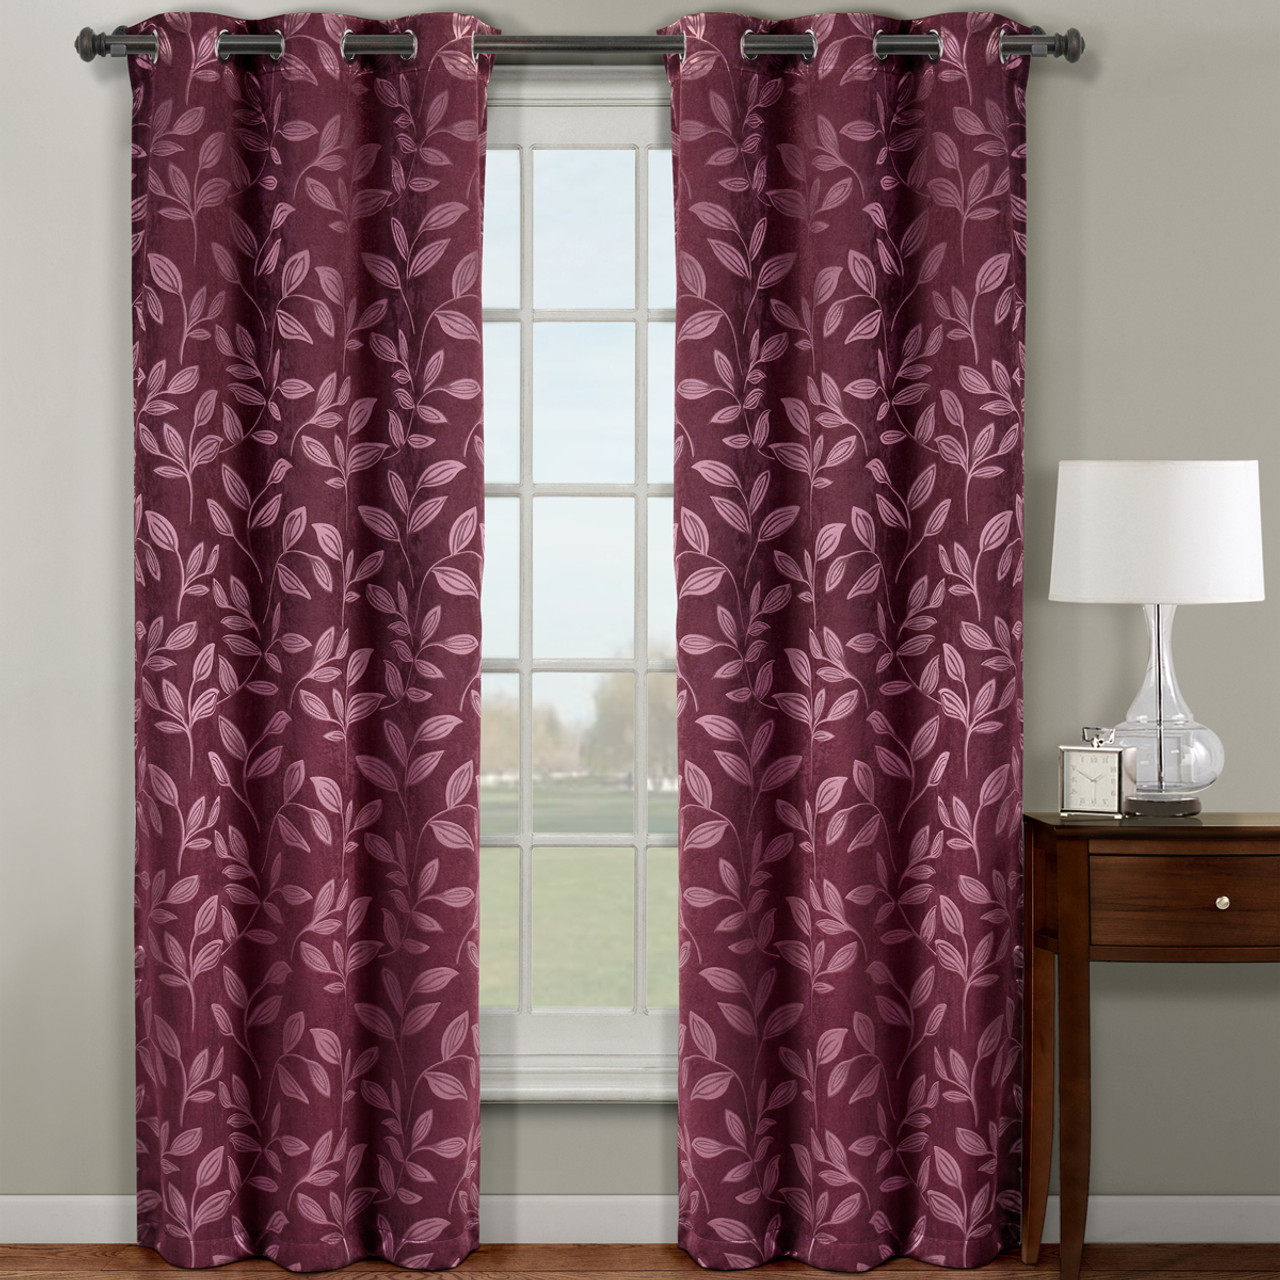 ... Claire Micro Suede Jacquard Blackout Weave Grommet Curtain Panels (Set  Of 2)  Burgundy ...